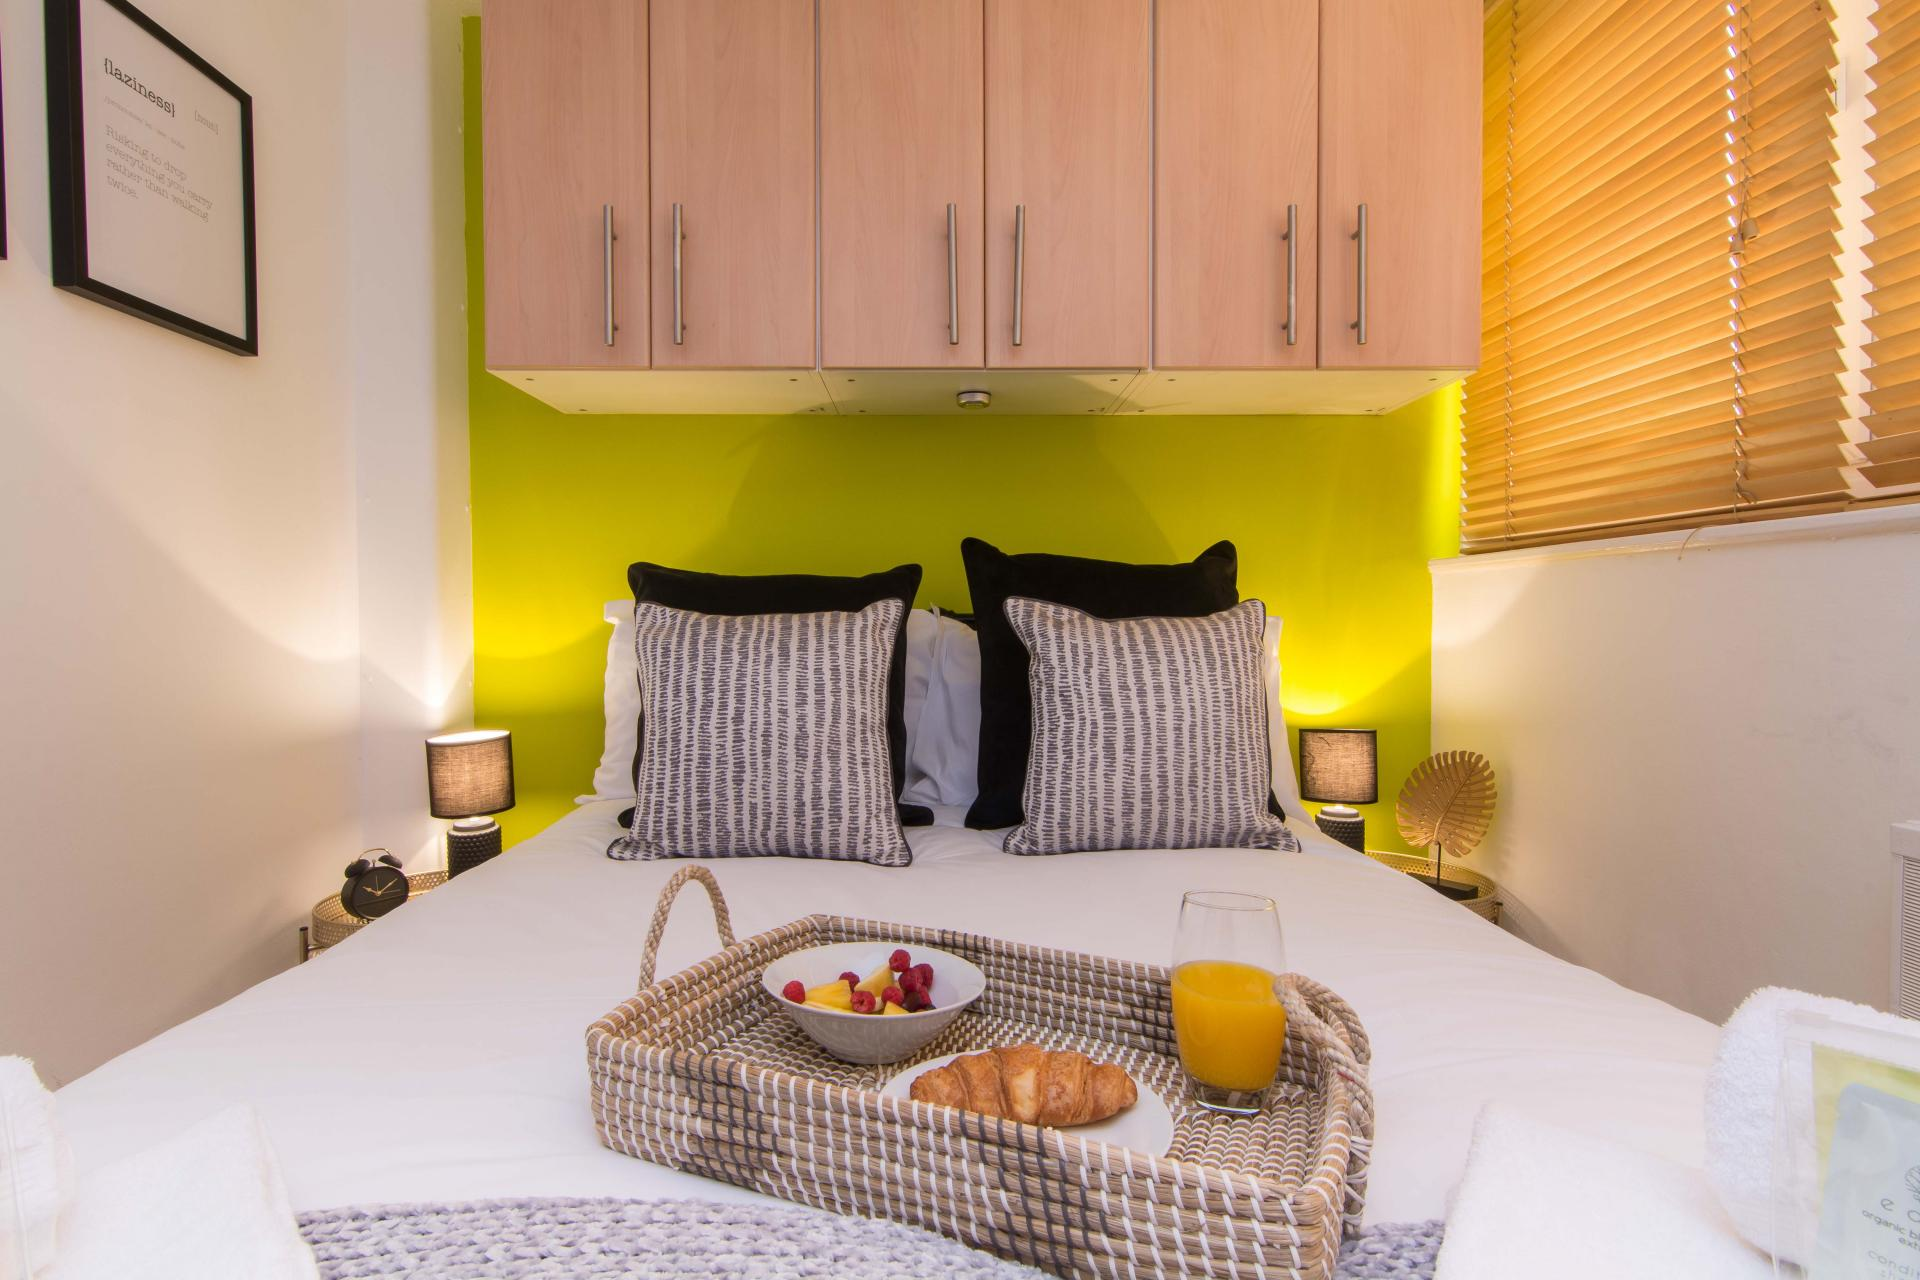 Bedroom at Victoria Centre Apartment, Centre, Nottingham - Citybase Apartments